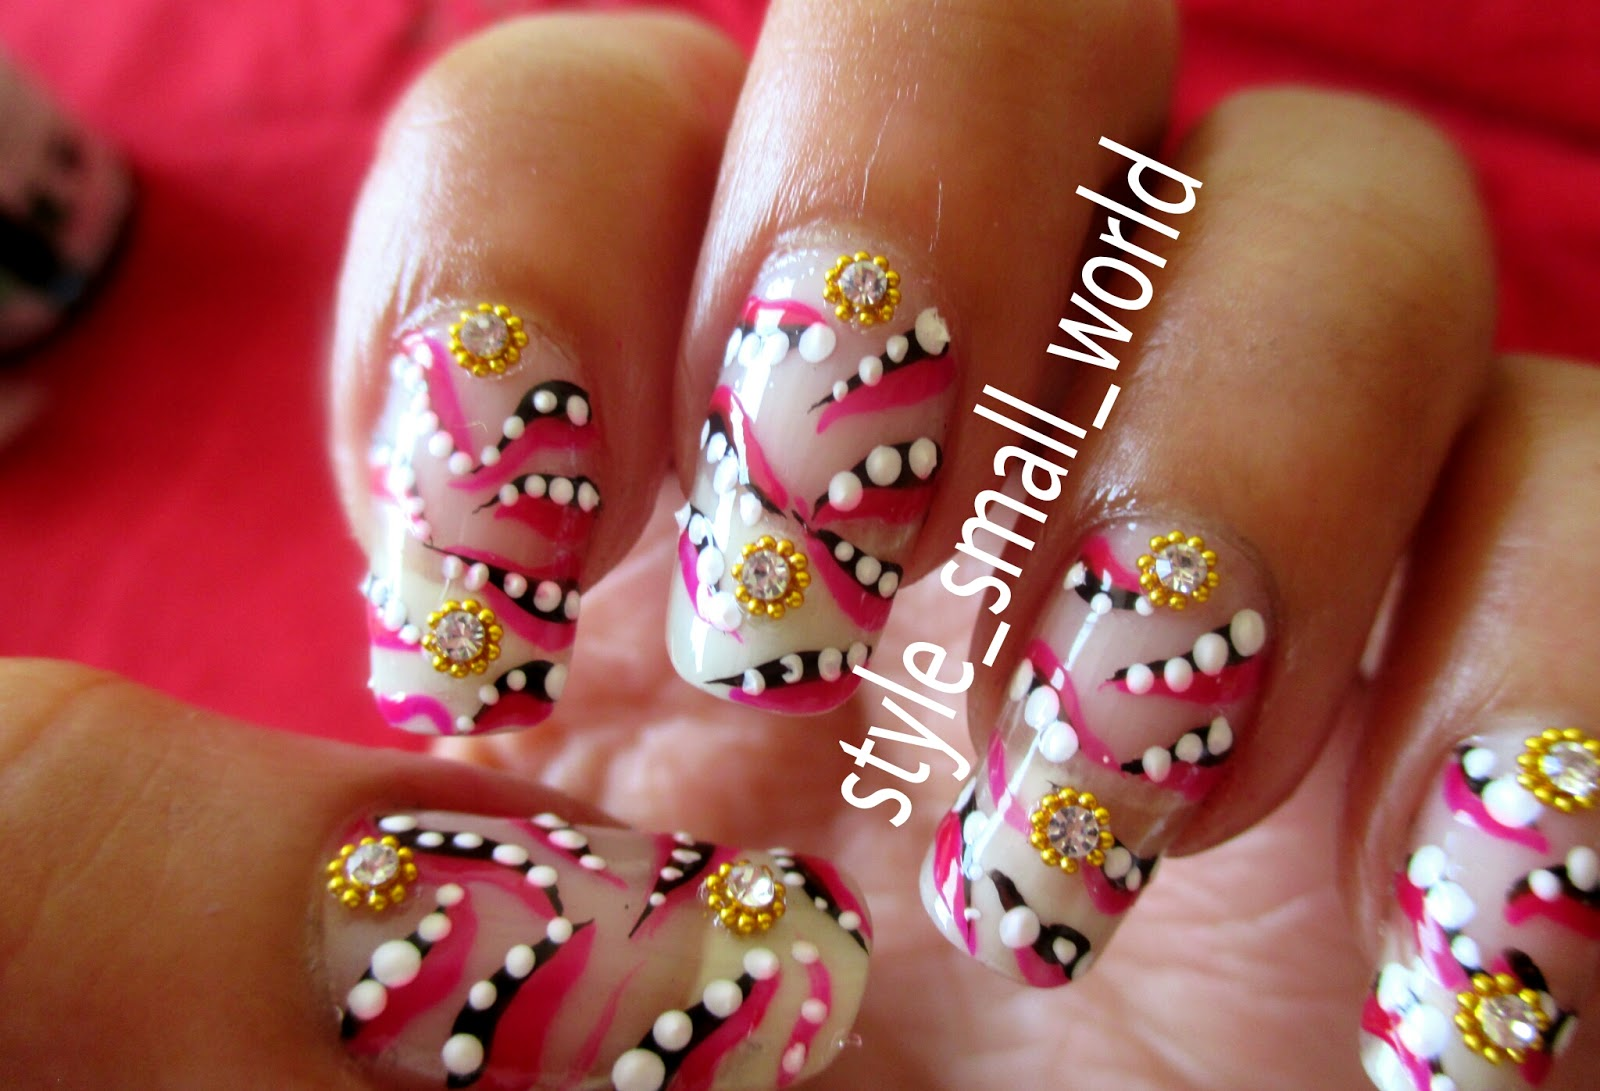 Superbe Here Iu0027m Showing You A Very Simple And Cute Nail Art Design. It Can Be  Painted In Quick Time. Beginners Can Easily Paint It On Their Nails.